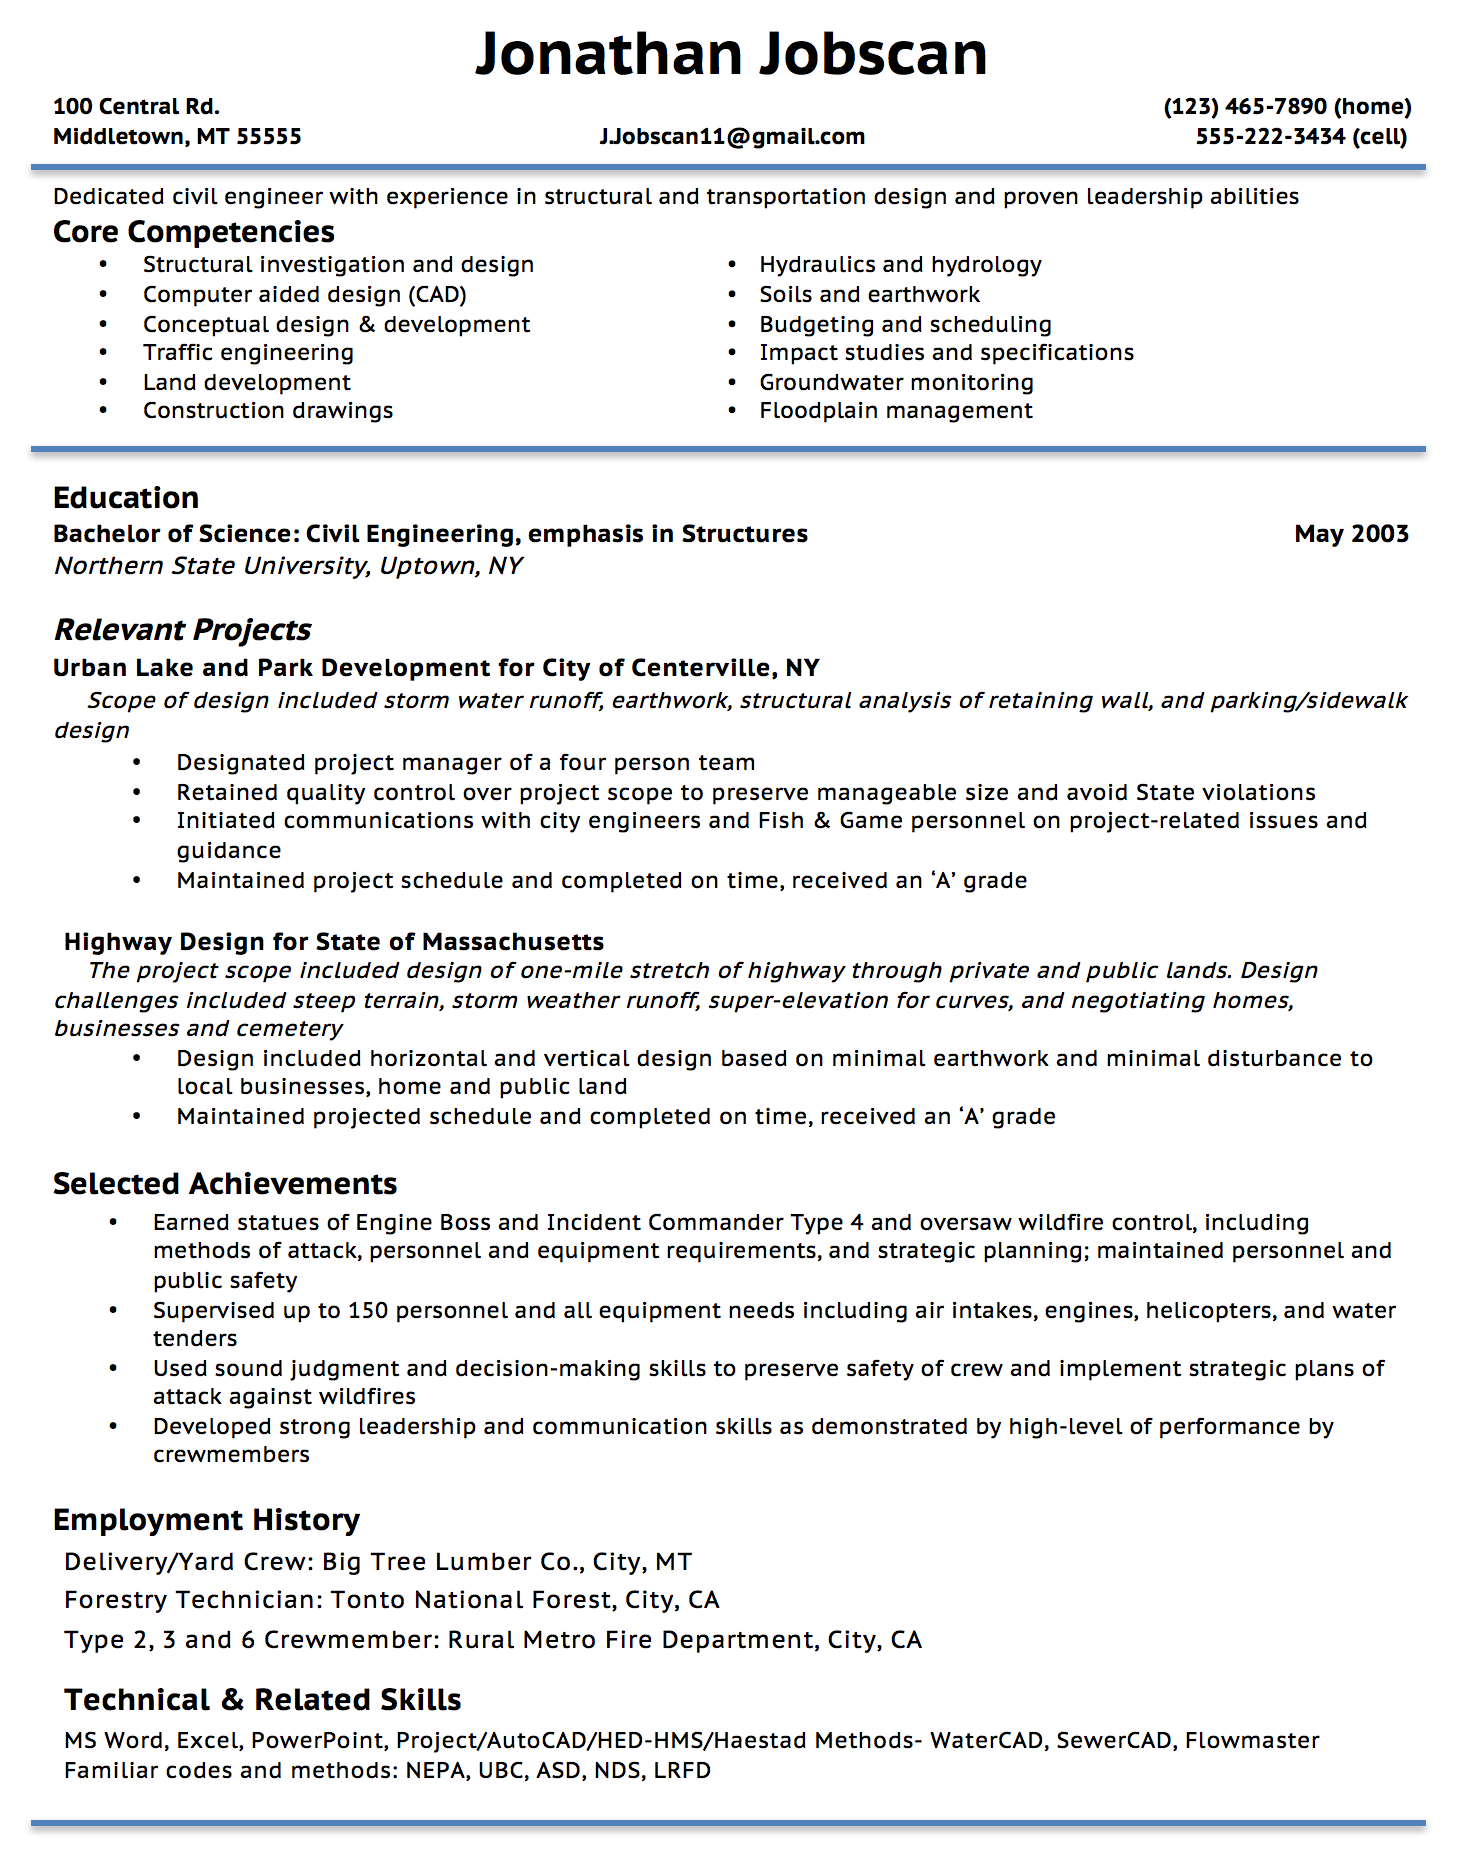 Picnictoimpeachus  Picturesque Resume Writing Guide  Jobscan With Glamorous Example Of A Functional Resume Format With Astounding Power Words For Resume Also Lpn Resume In Addition Resume Cover Letter Format And Free Resume Builder Online As Well As Resume Cover Letter Samples Additionally How To Resume From Jobscanco With Picnictoimpeachus  Glamorous Resume Writing Guide  Jobscan With Astounding Example Of A Functional Resume Format And Picturesque Power Words For Resume Also Lpn Resume In Addition Resume Cover Letter Format From Jobscanco